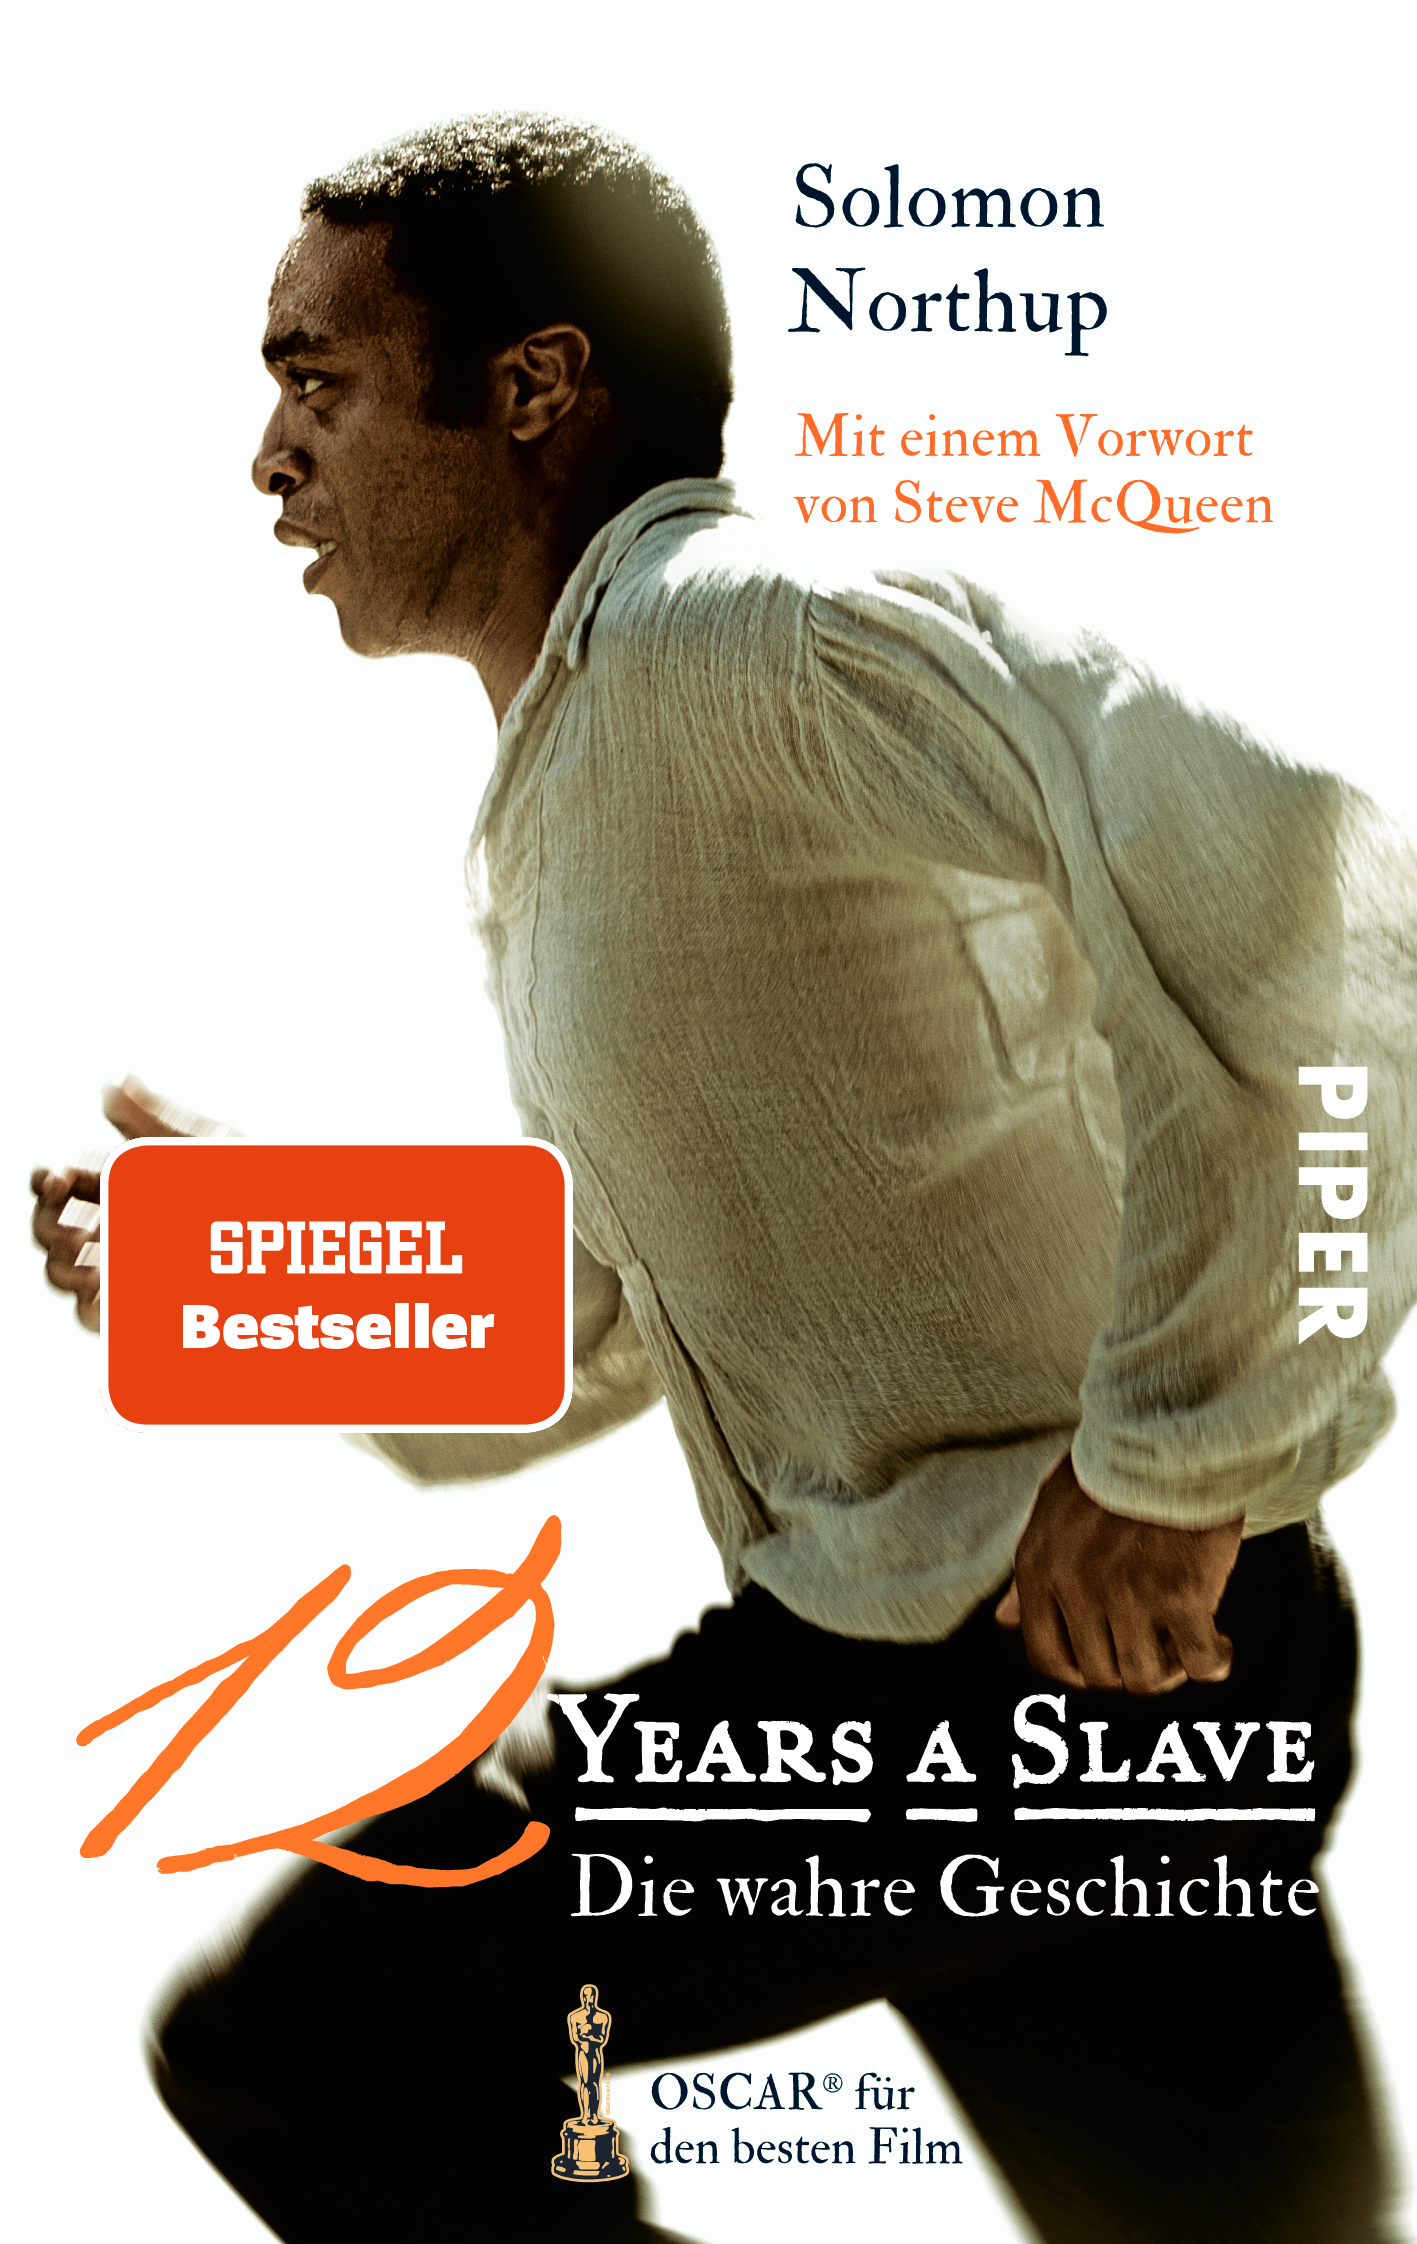 tweleve years a slave Twelve years a slave is an 1853 memoir and slave narrative by american solomon northup as told to and edited by david wilson northup, a black man who was born free.